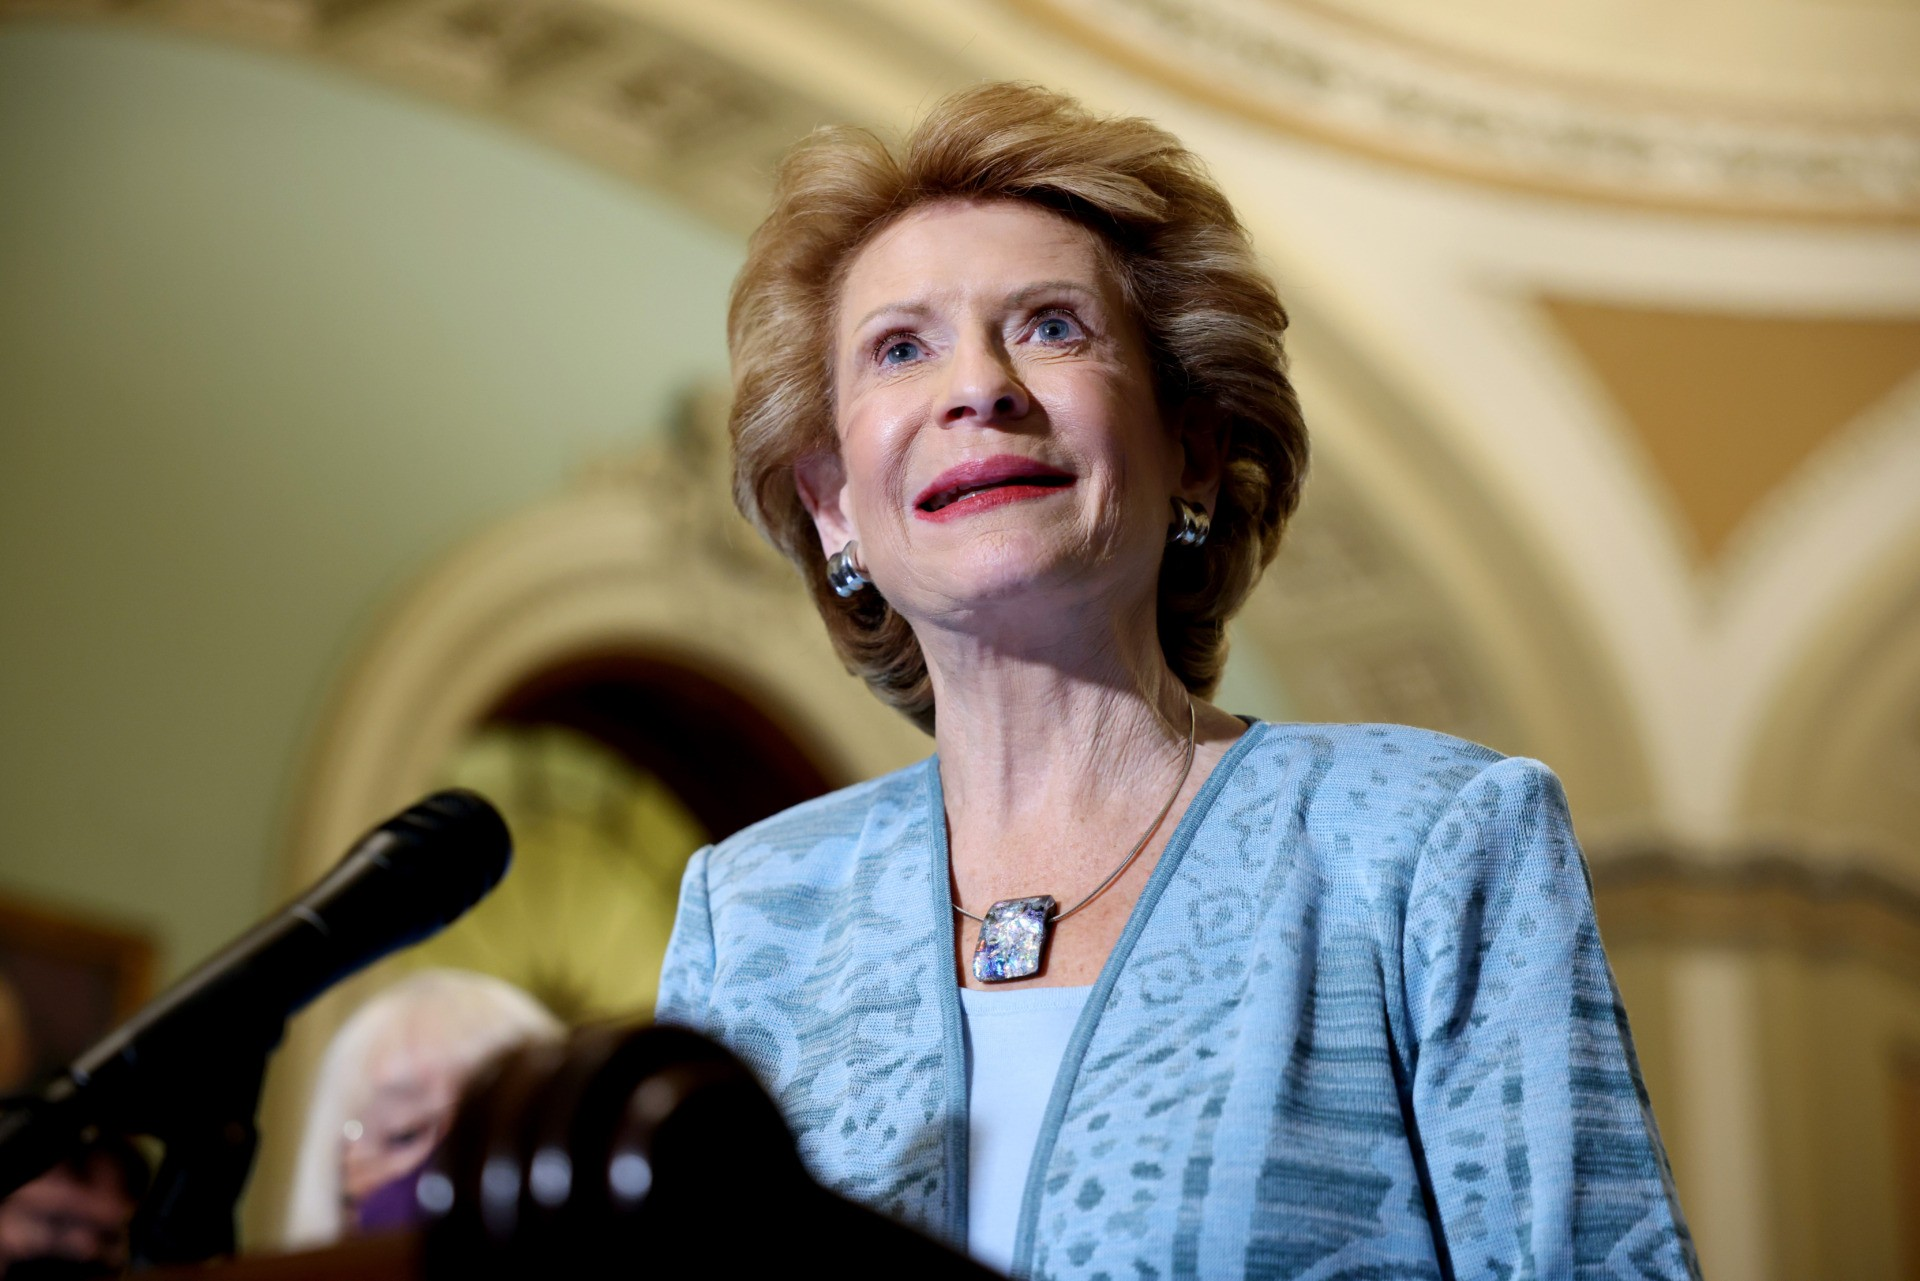 WASHINGTON, DC - AUGUST 03: Sen. Debbie Stabenow (D-MI) speaks at a news conference with Senate Democratic Leadership at the Capitol Building on August 03, 2021 in Washington, DC. The Senate has moved on to the amendments process this week for the legislative text of the $1 trillion infrastructure bill, which aims to fund improvements to roads, bridges, dams, climate resiliency and broadband internet. (Photo by Anna Moneymaker/Getty Images)